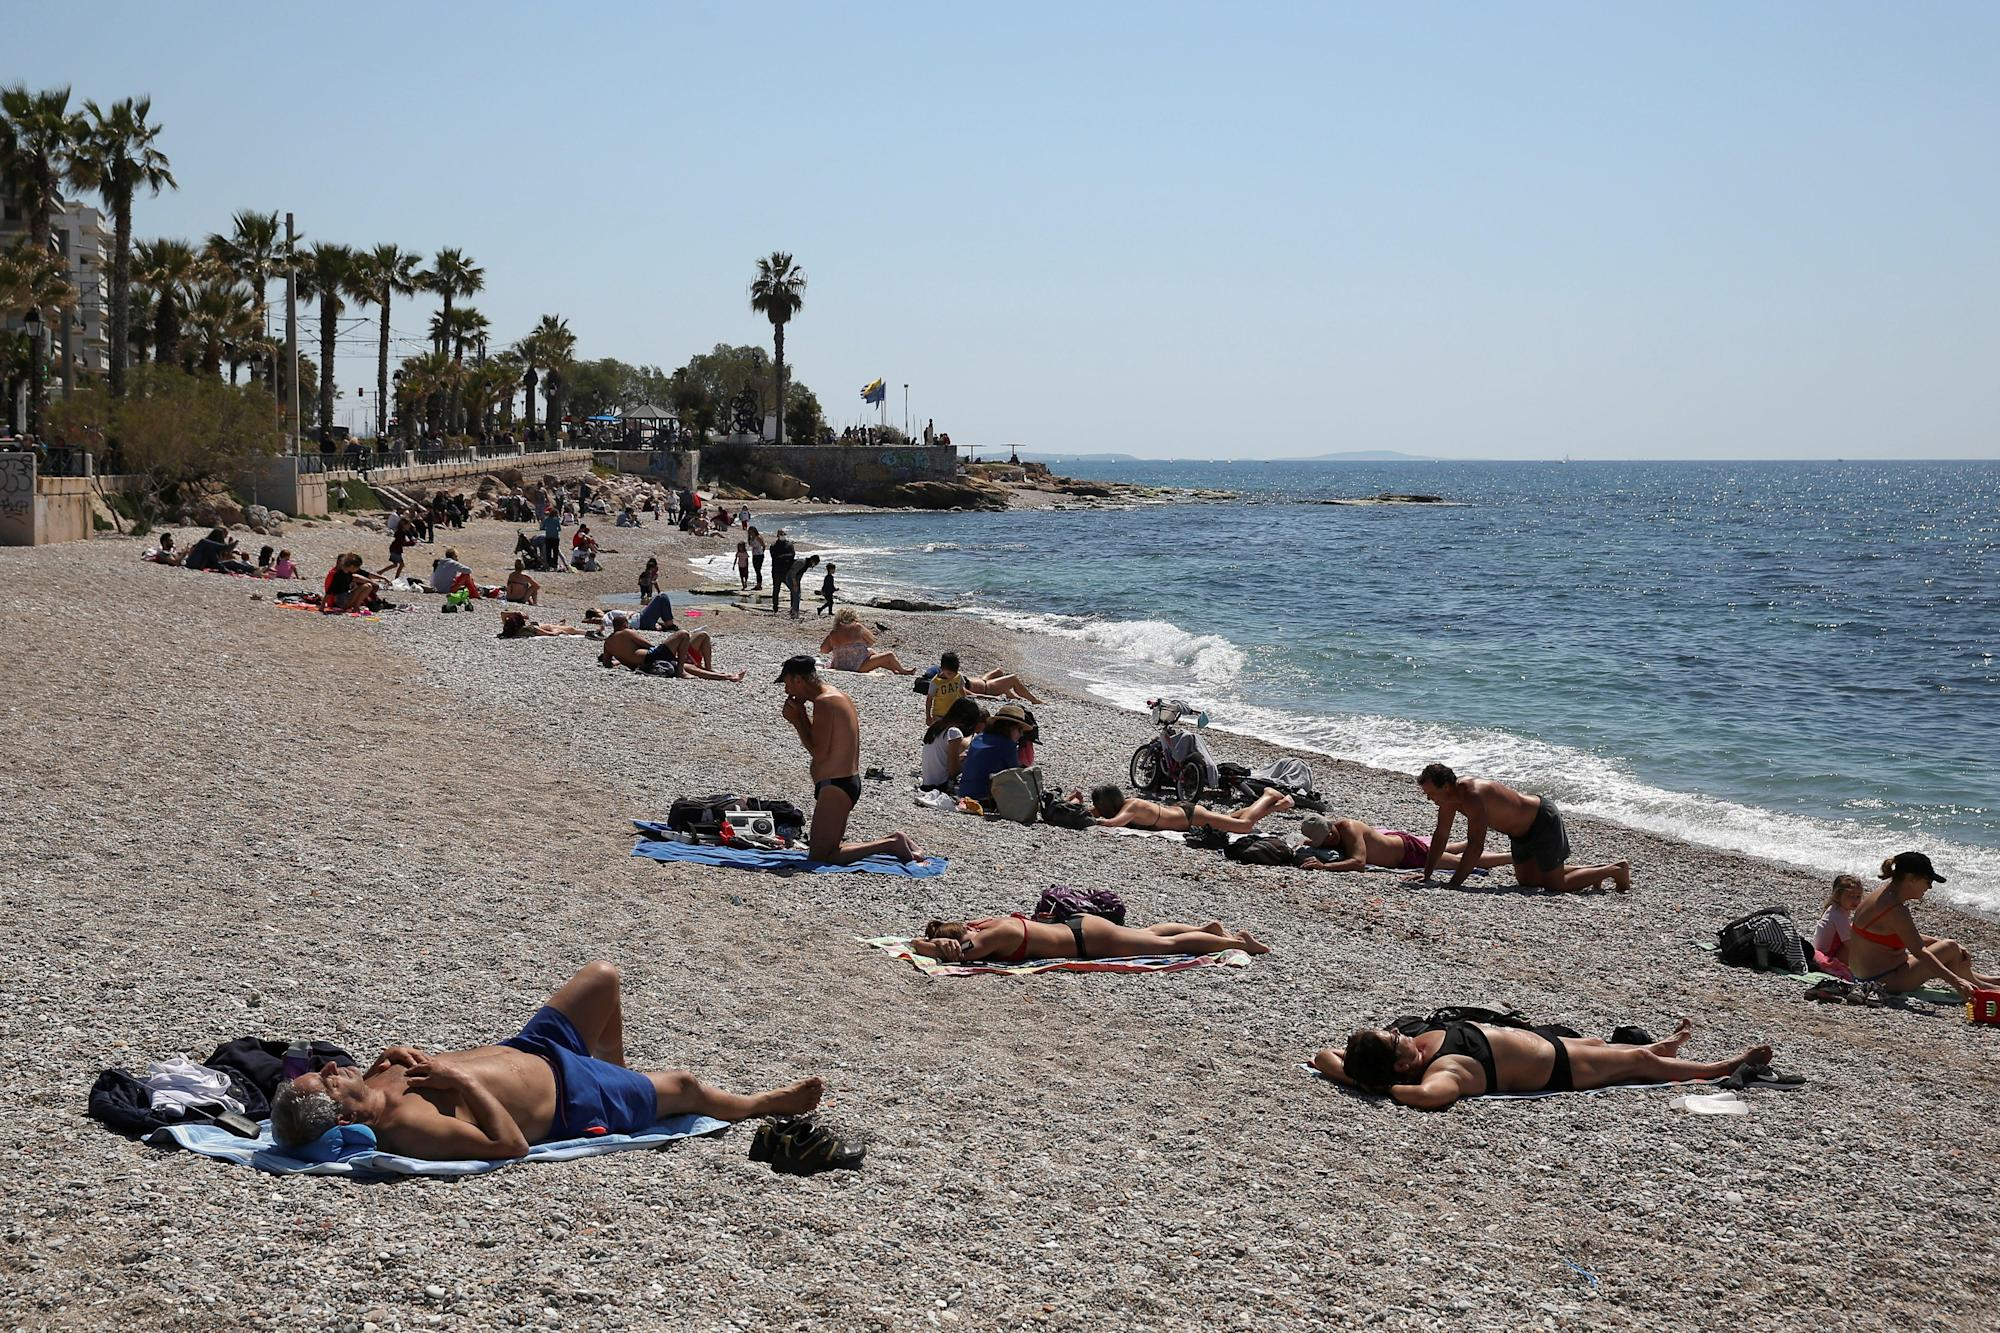 Spain and Greece tighten restrictions before British travellers arrive this summer